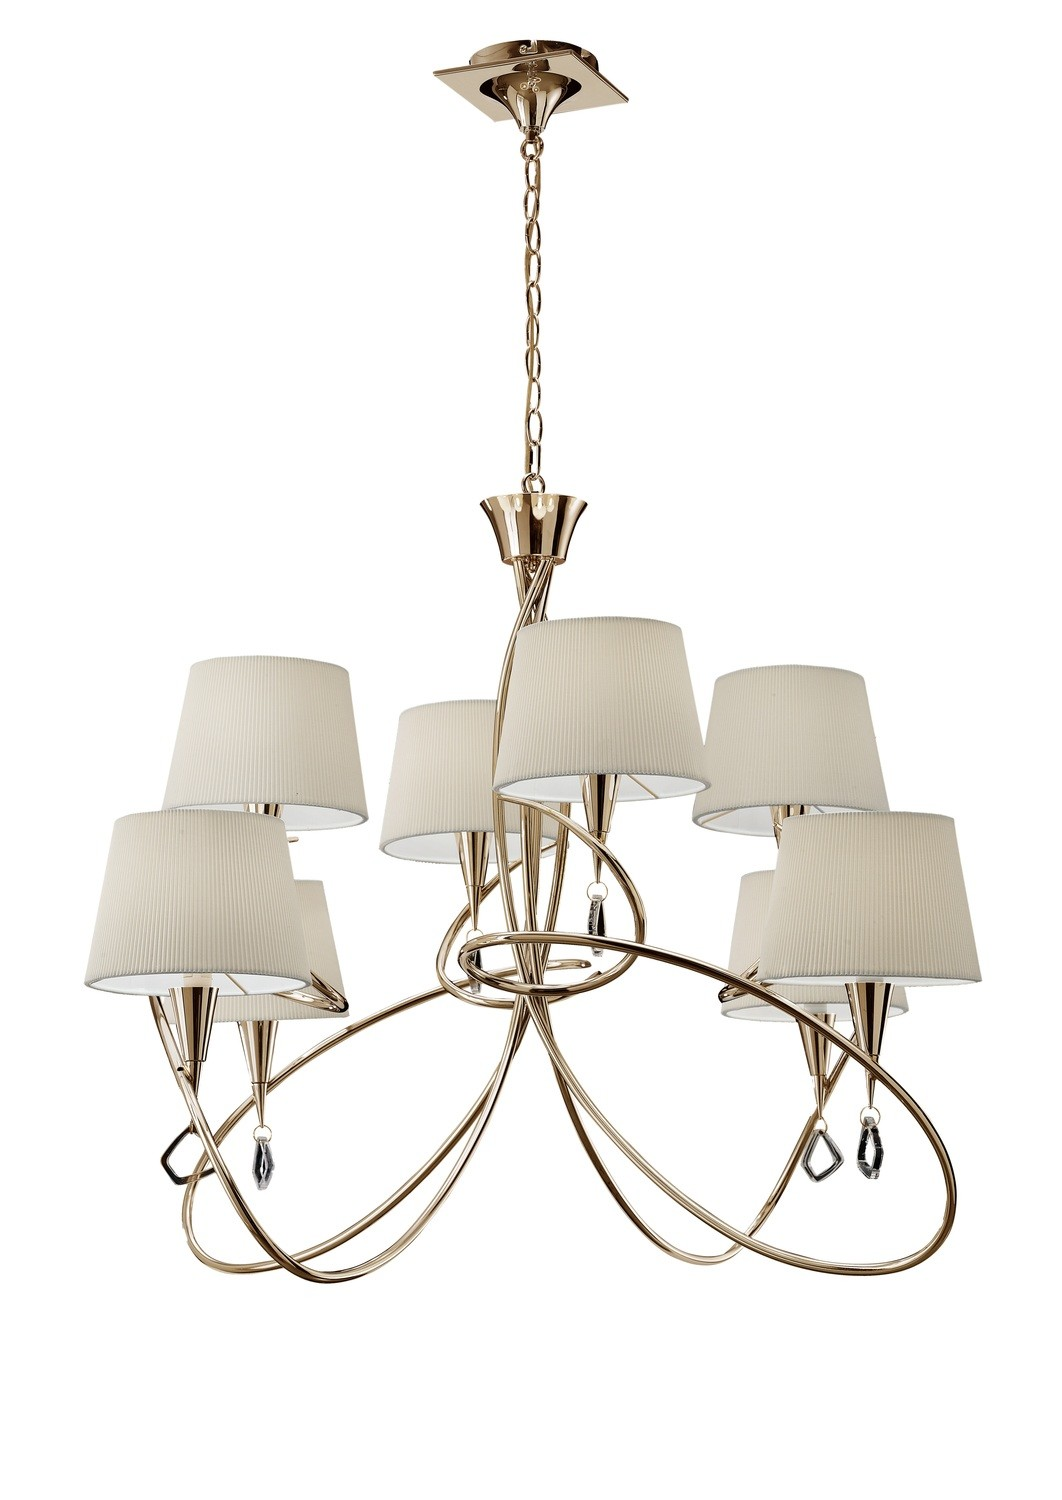 Mara Pendant 2 Tier 8 Light E14, French Gold With Ivory White Shades